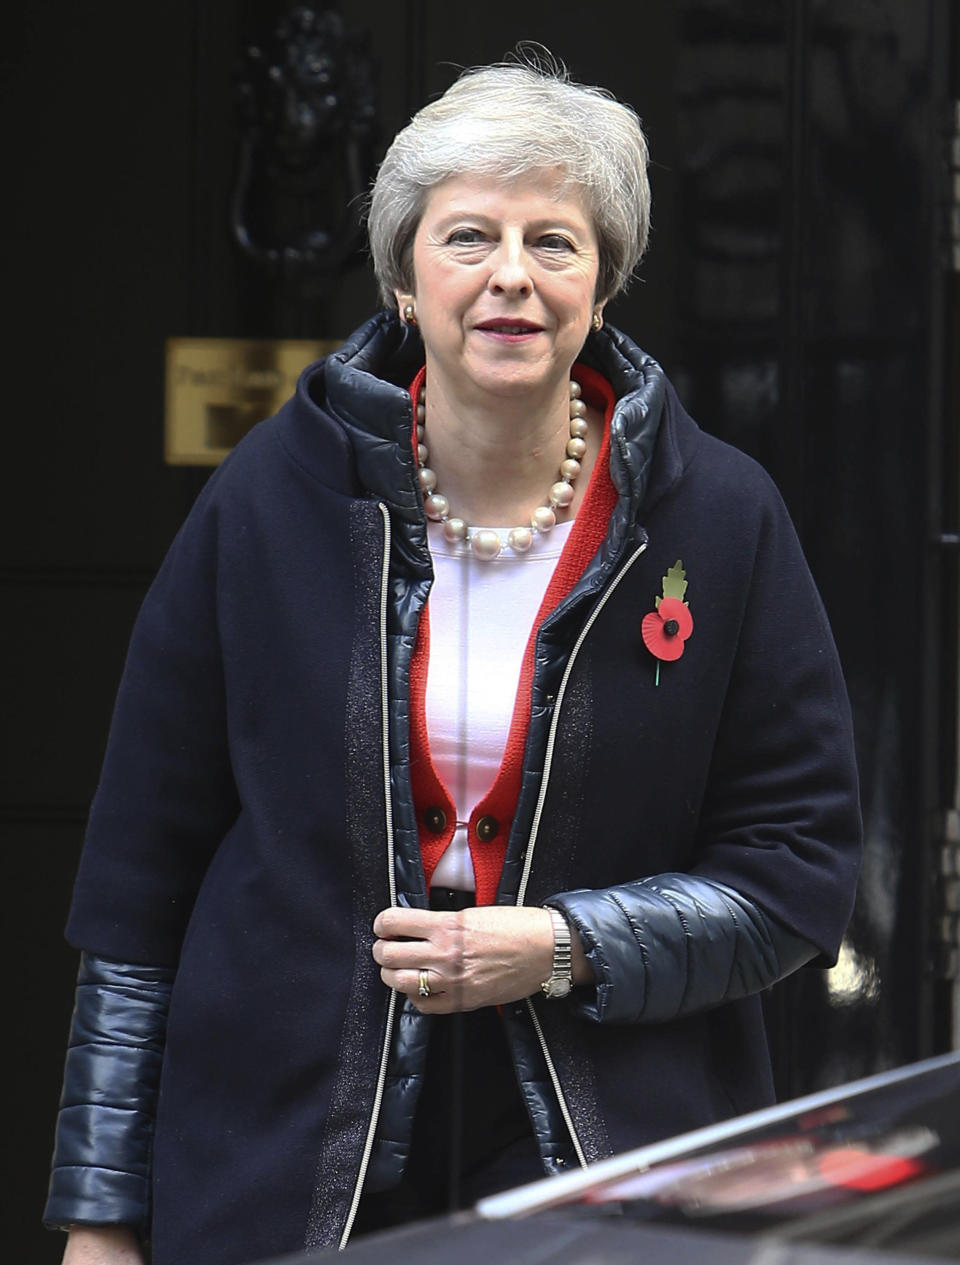 <em>The letter says that despite Theresa May's efforts, proposals for Brexit are nowhere near as good as the current deal inside the EU (Picture: AP)</em>